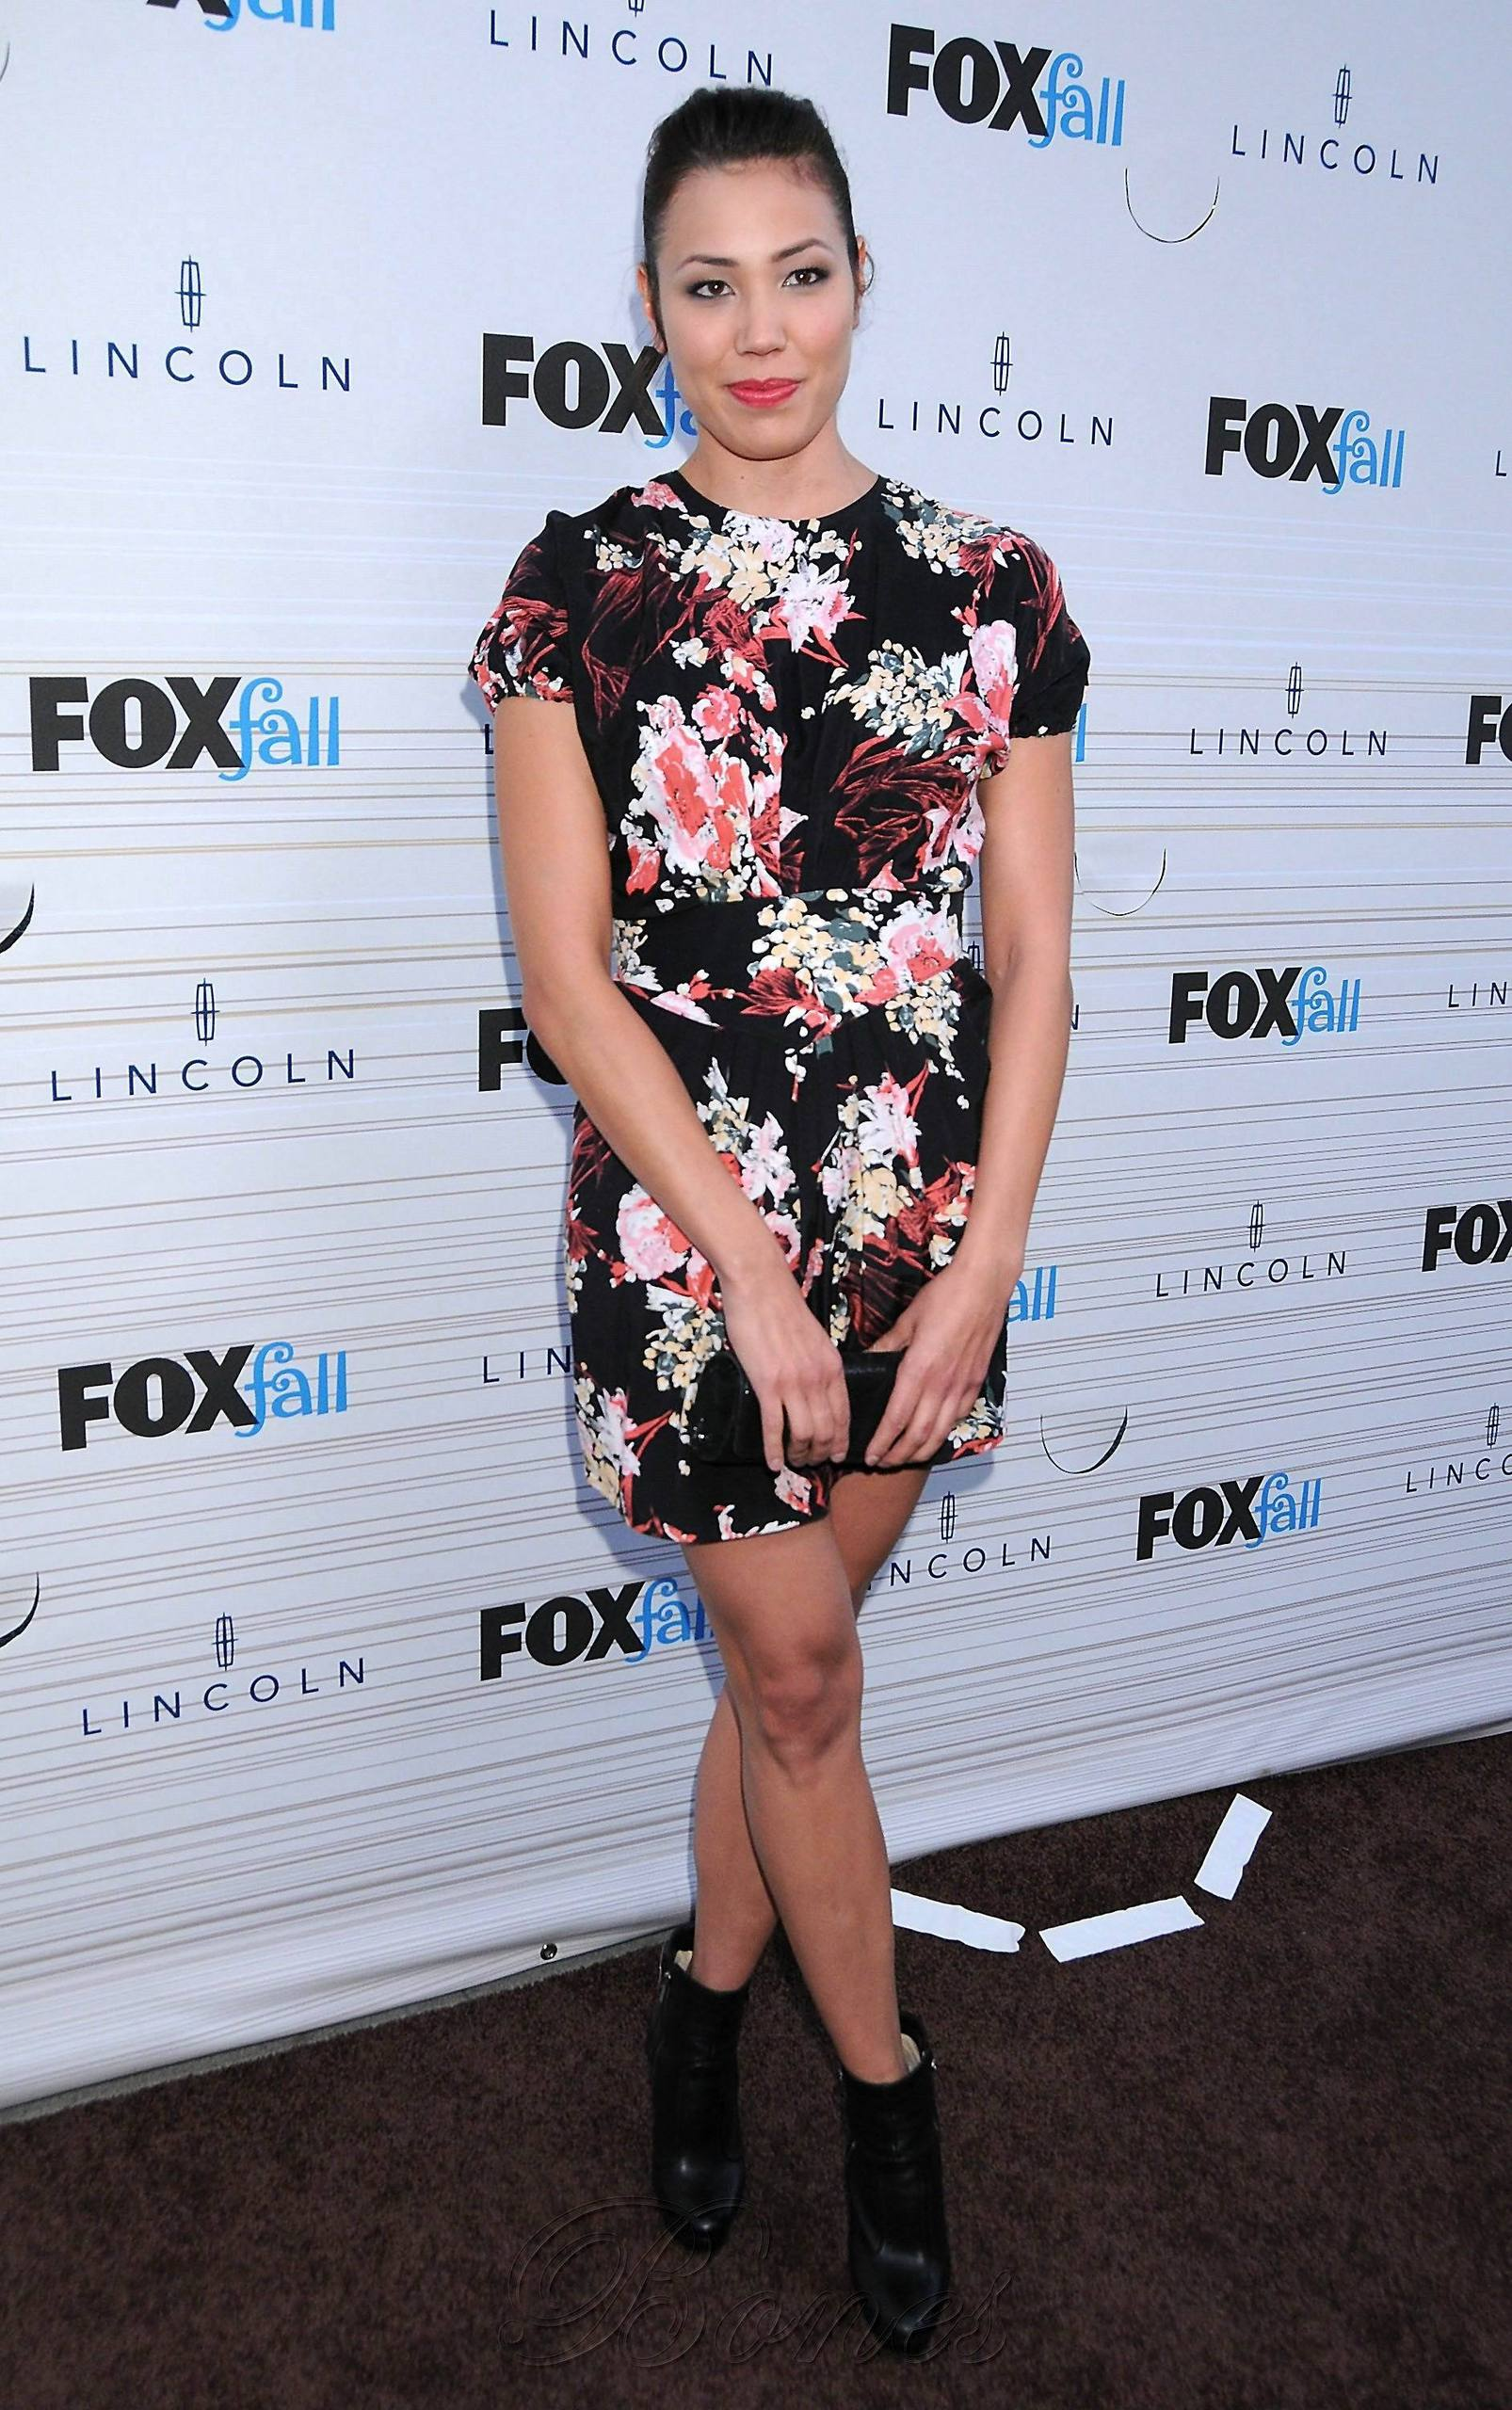 Michaela Conlin - HQ 图片 Of The 狐狸 Fall Party